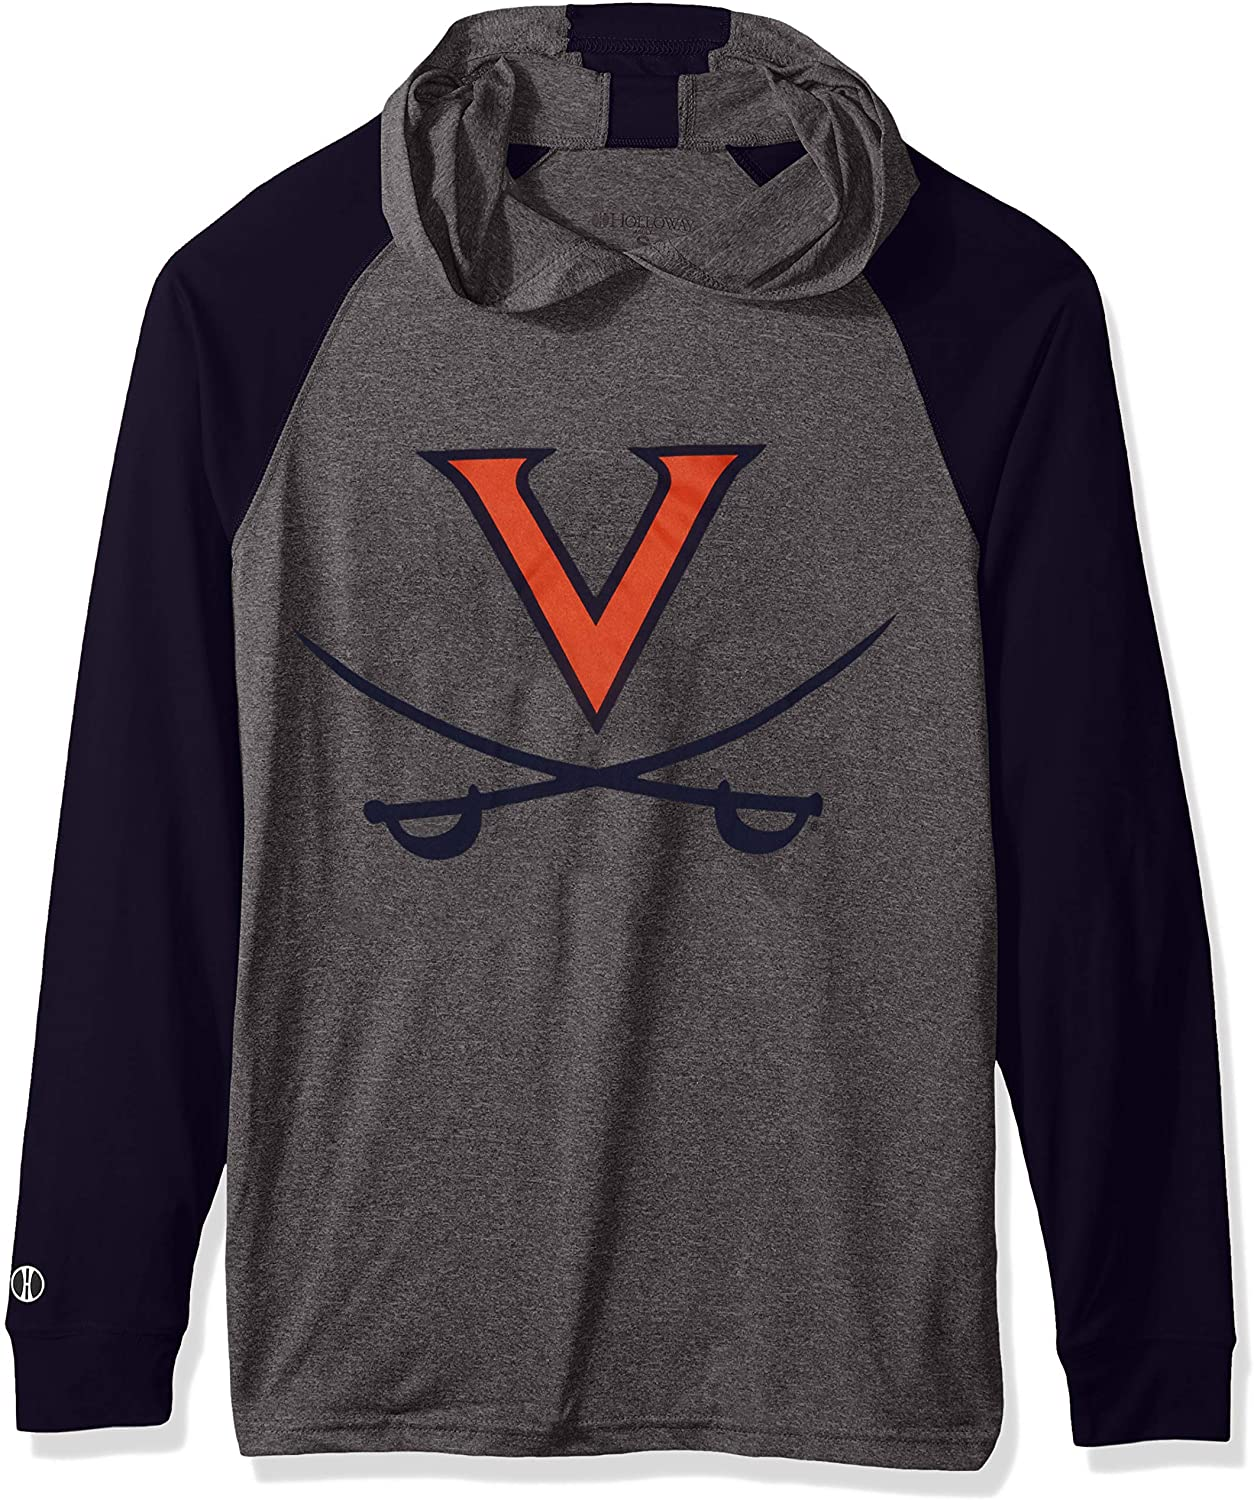 Ouray Sportswear NCAA Virginia Cavaliers Men's Echo Hoodie, Graphite/Navy, Medium